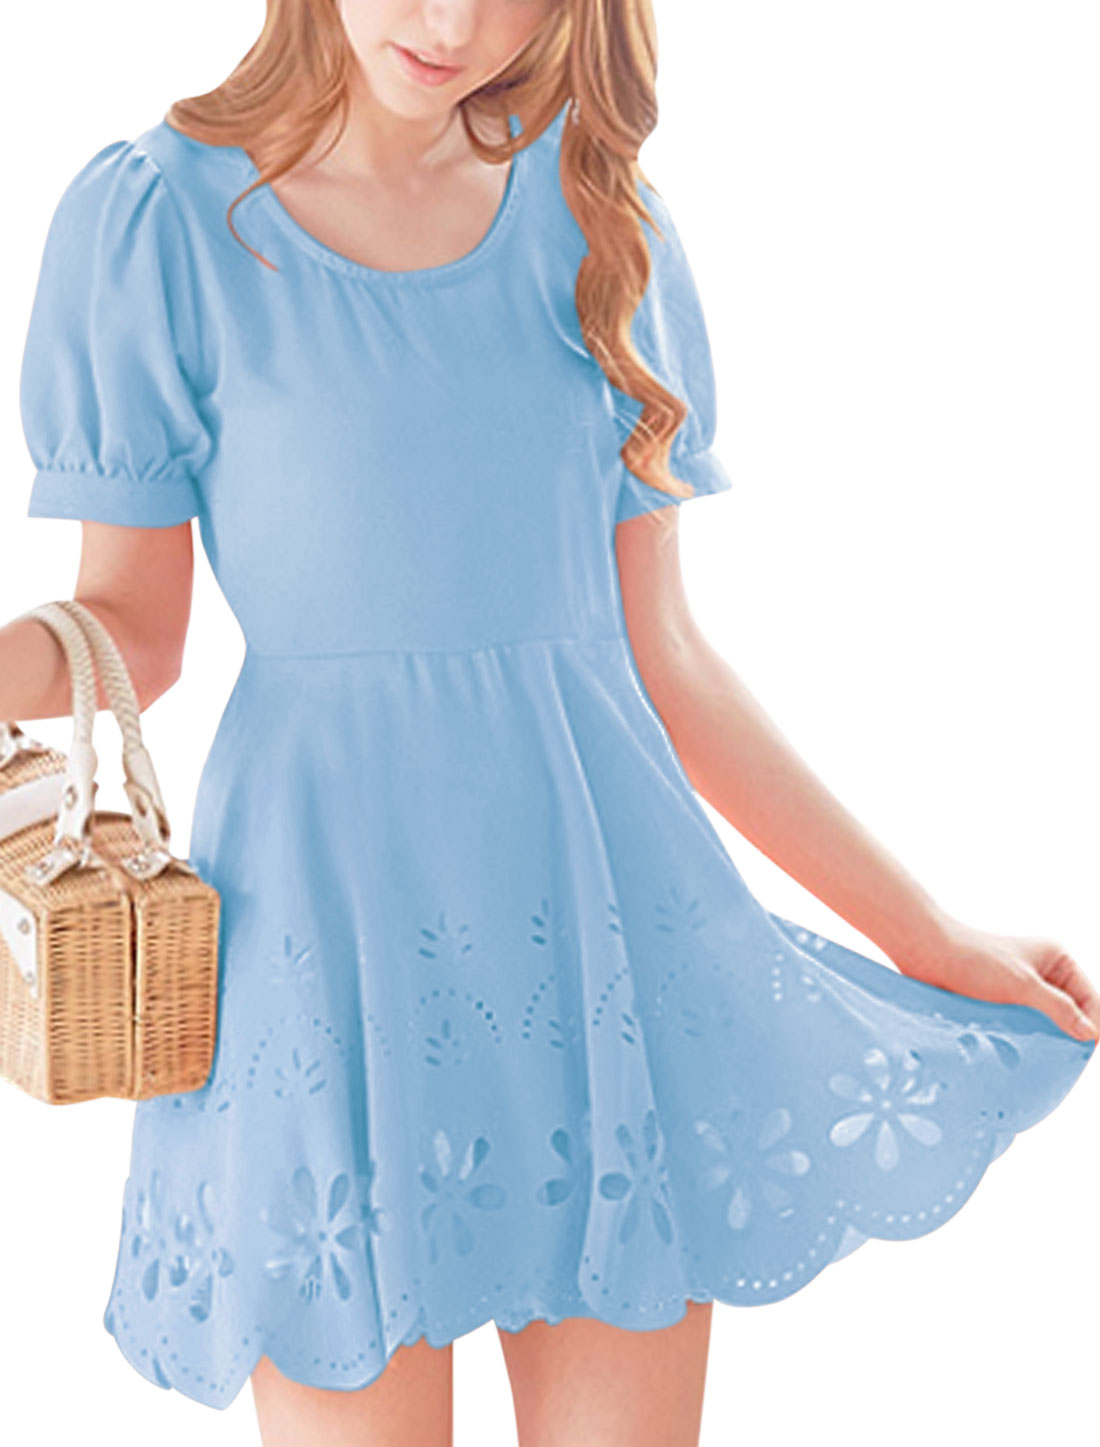 Women Short Sleeves Hollow Out Design A-line Dress Light Blue S